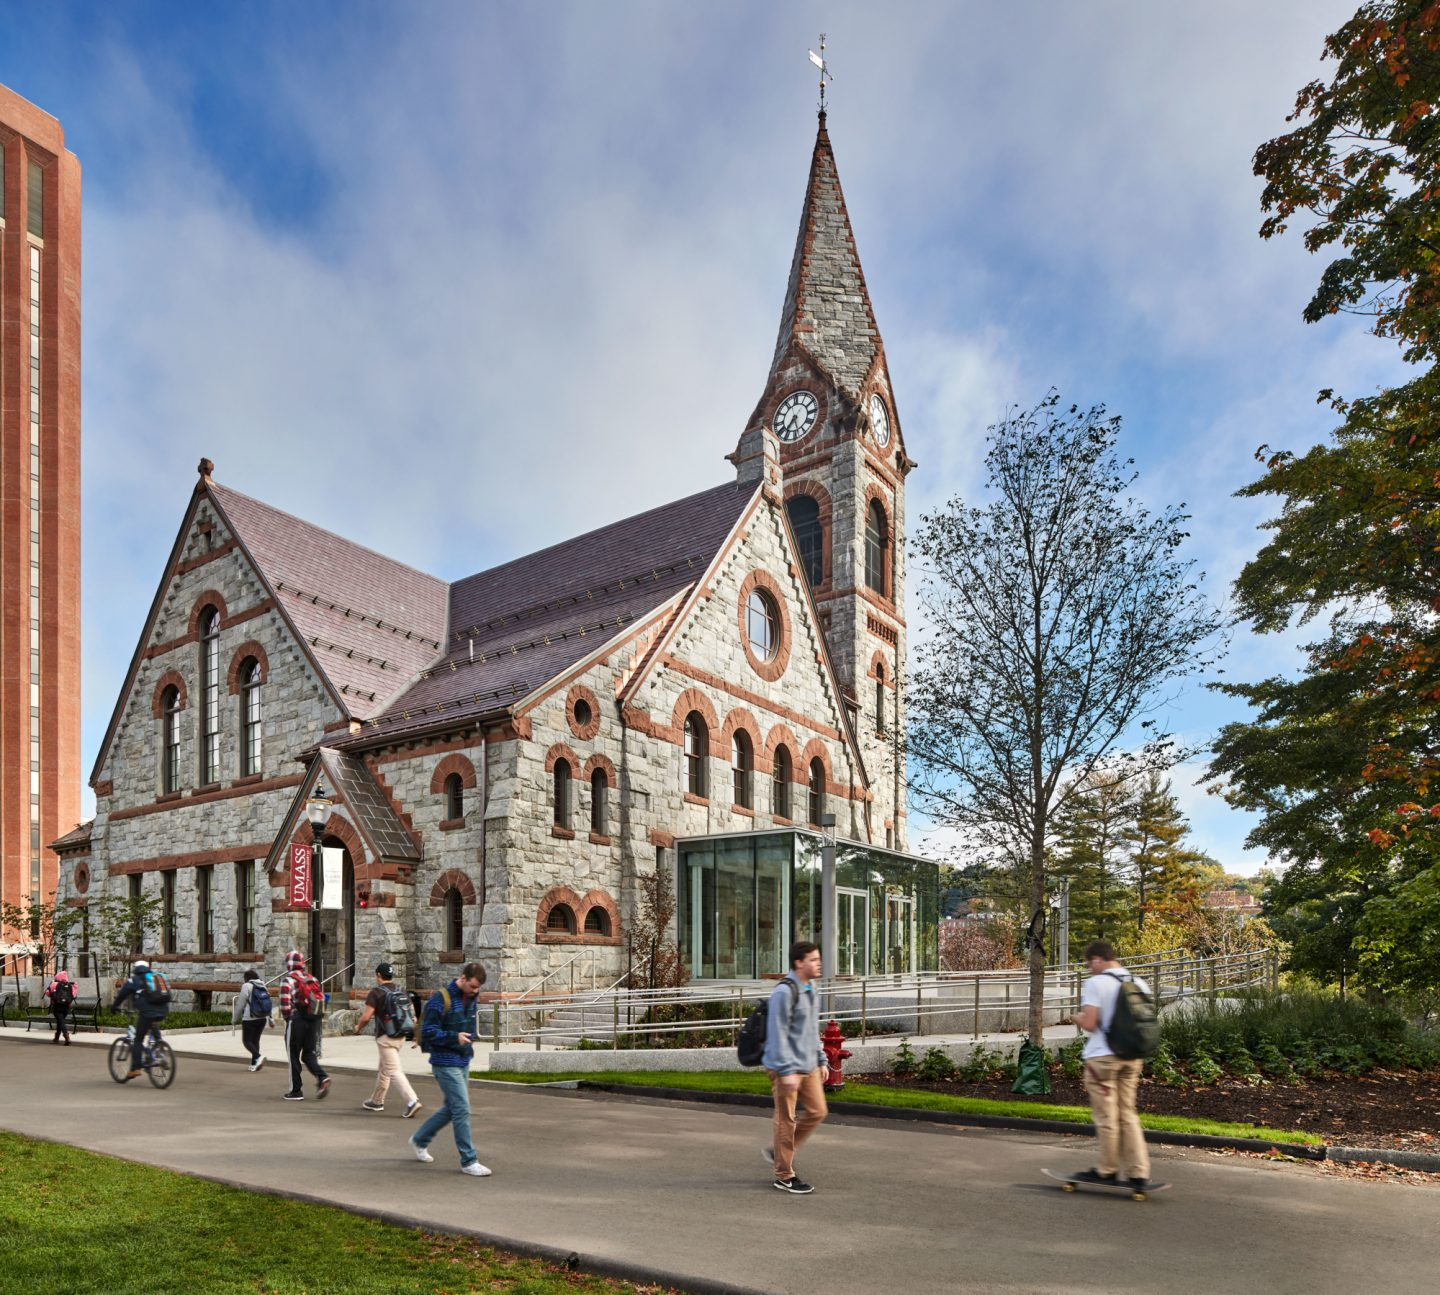 Old Chapel UMASS Amherst - 1884 Richardsonian Romanesque Revival style 19th century building with renovation by Finegold Alexander Architects, Inc. in 2015.